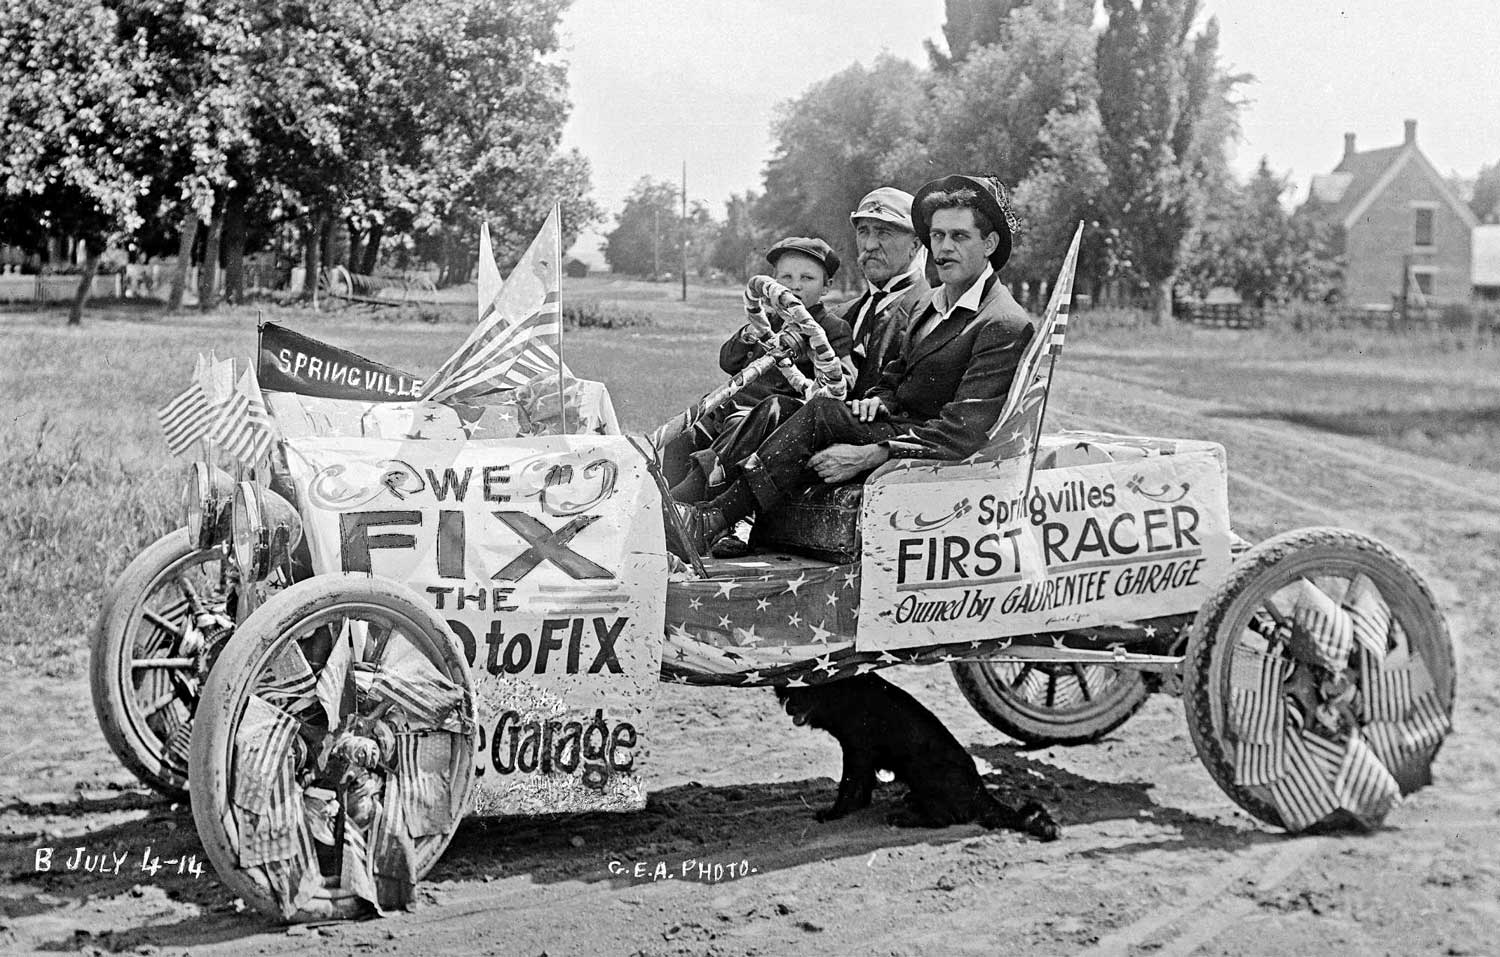 """Happy Fourth of July 104 Years Ago from the """"Gaurentee"""" Garage 